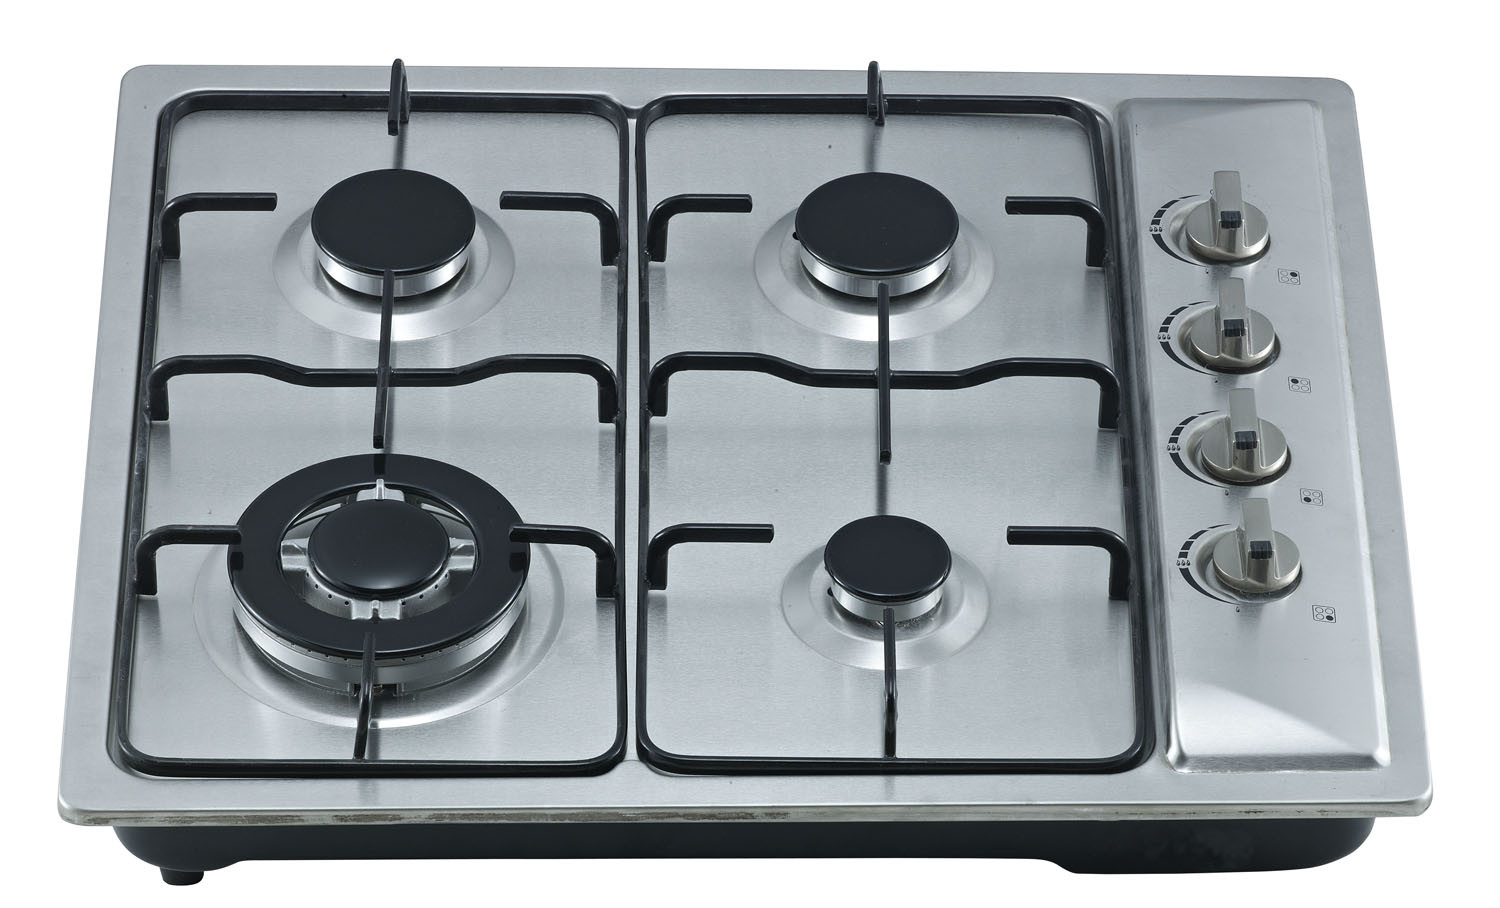 Build-in Gas Cooker Hob with Stainless Steel Top and Four Buners Sn-624